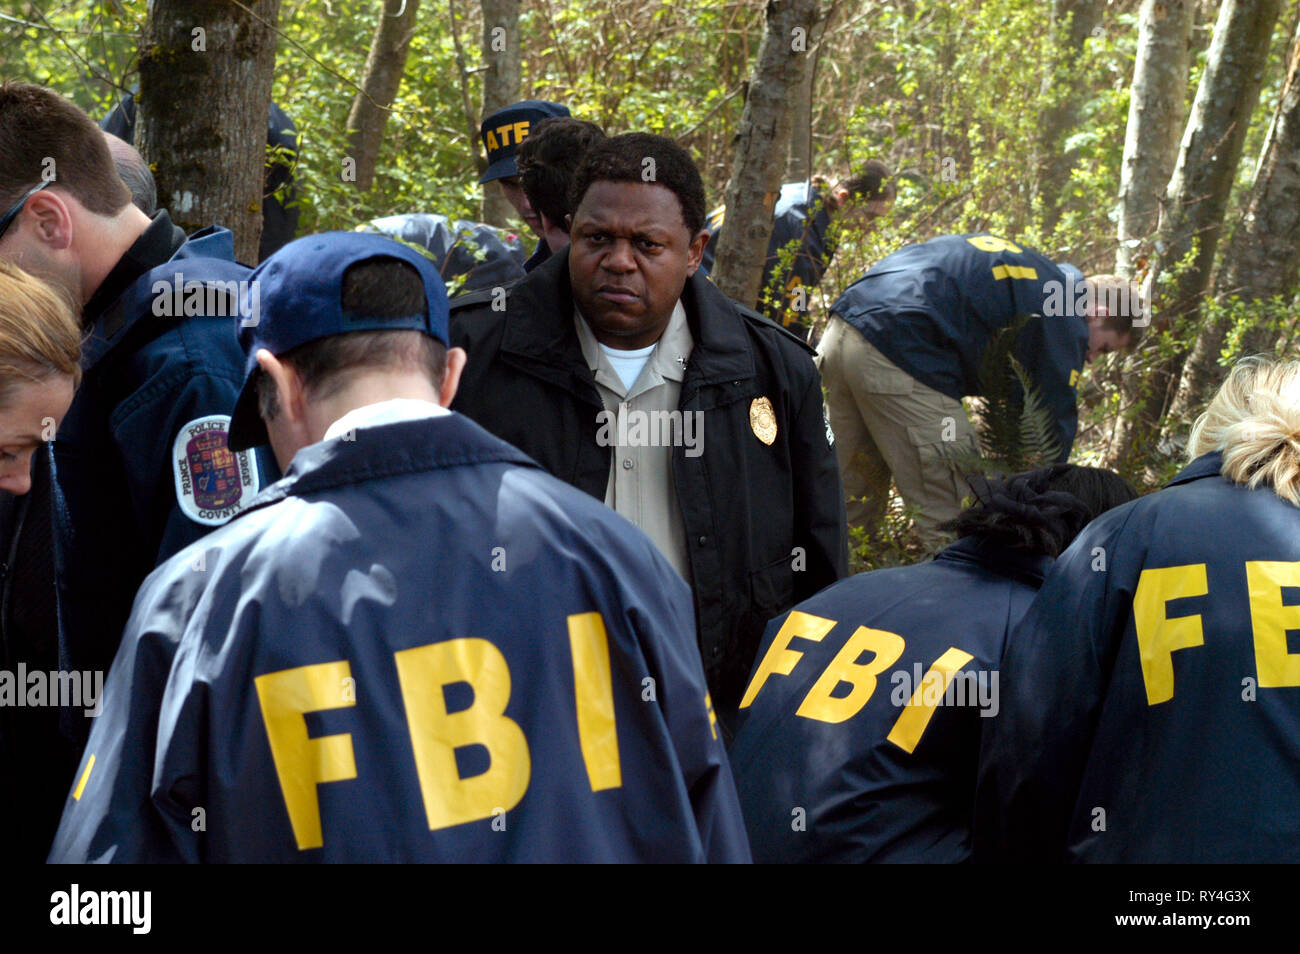 CHARLES S. DUTTON, D.C. SNIPER: 23 DAYS OF FEAR, 2003 - Stock Image